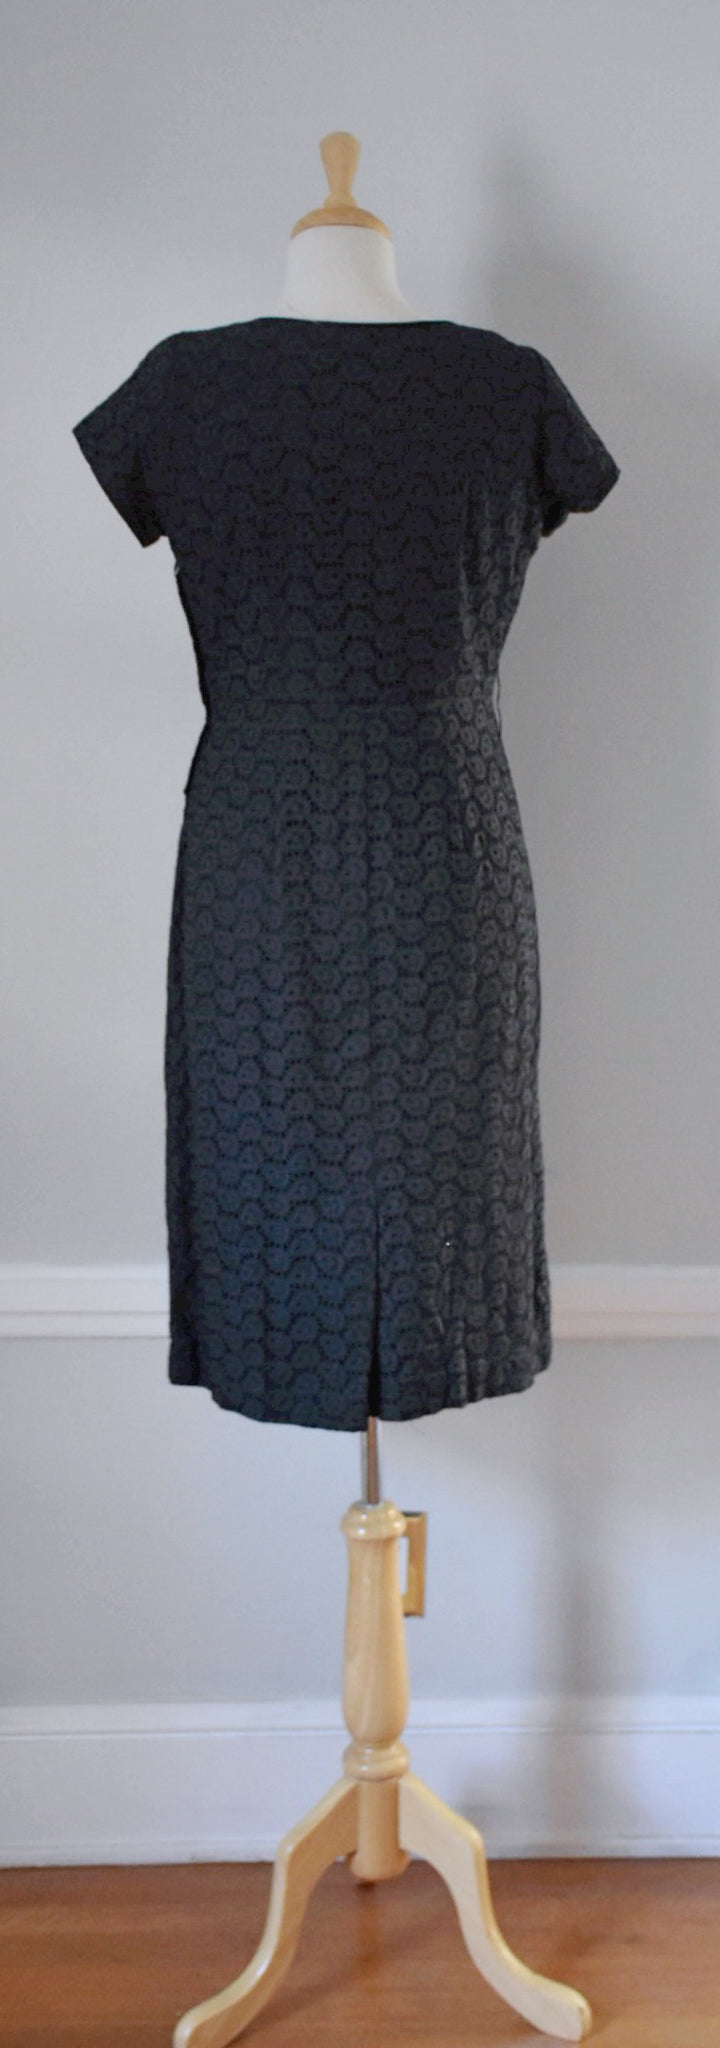 50s Vintage Black Eyelet Sheath Dress